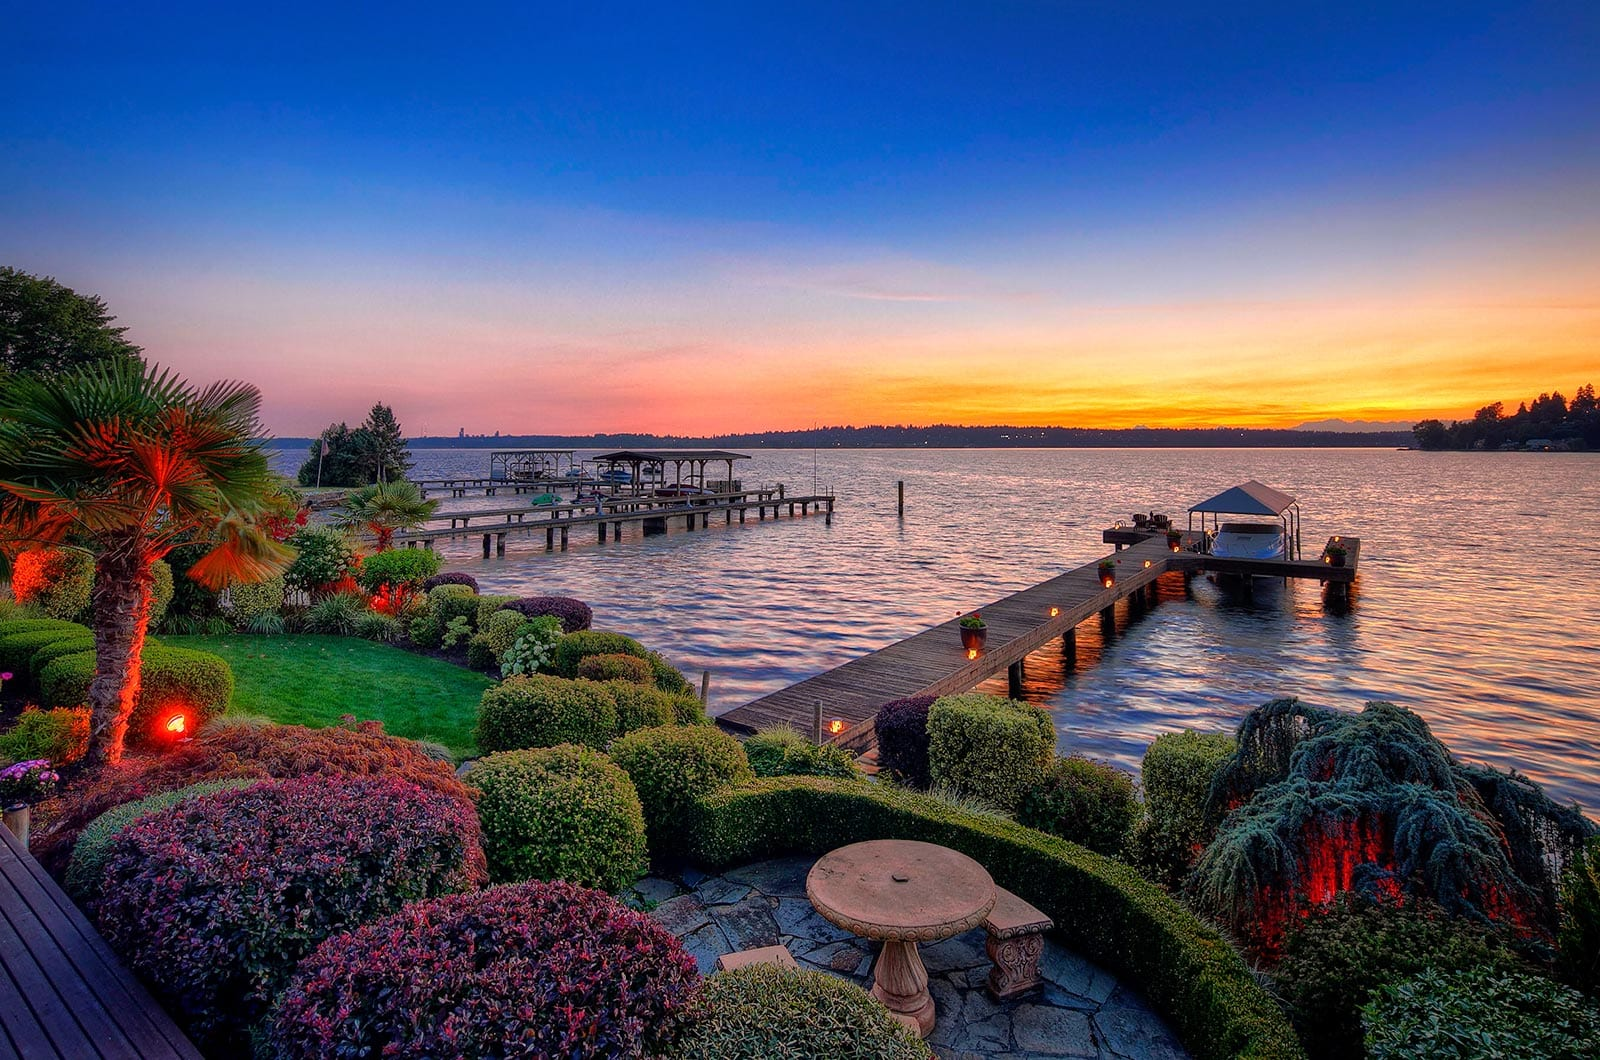 Featured Kirkland Image | Kirkland Virtual Tour Photographer | Kirkland HDR Real Estate Photography | Kirkland Aerial Photography Services | Kirkland Matterport 3D Tours